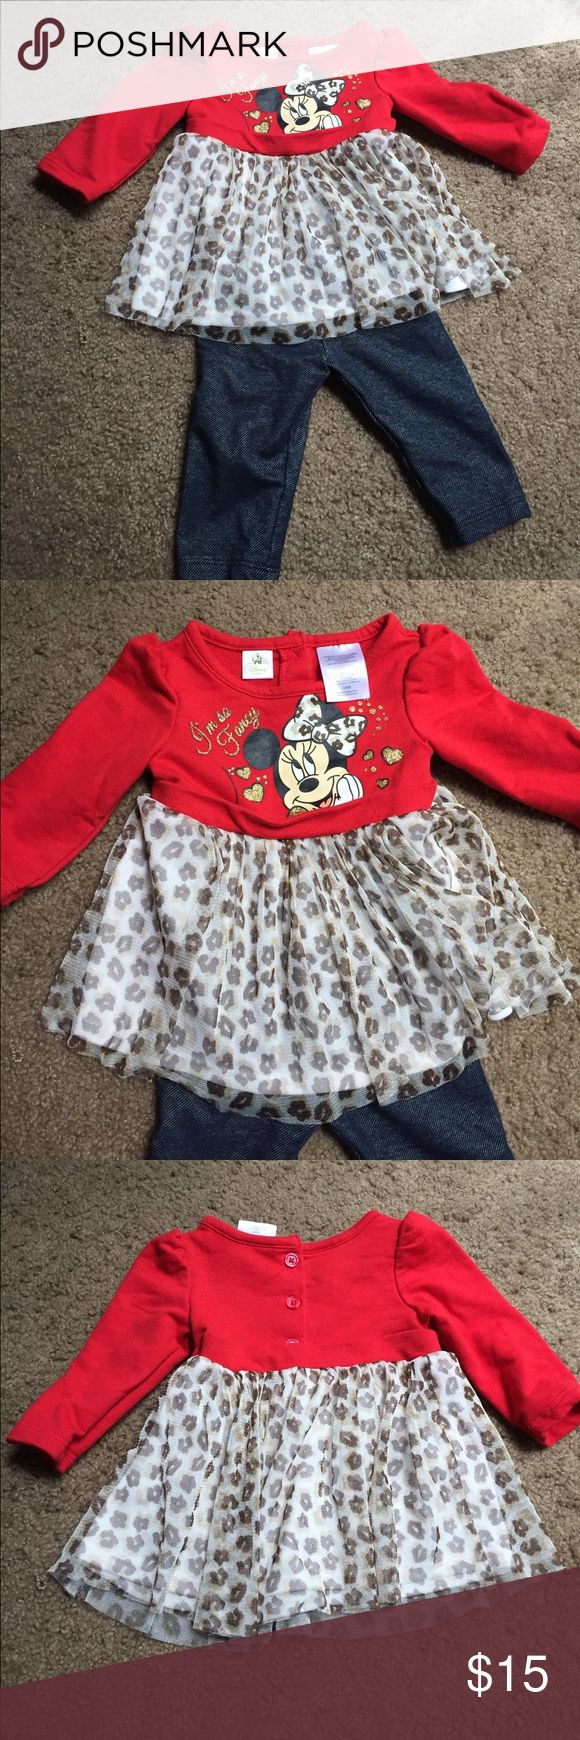 Minnie Cheetah outfit Worn once! Super cute! Smoke-free home! Disney Matching Sets